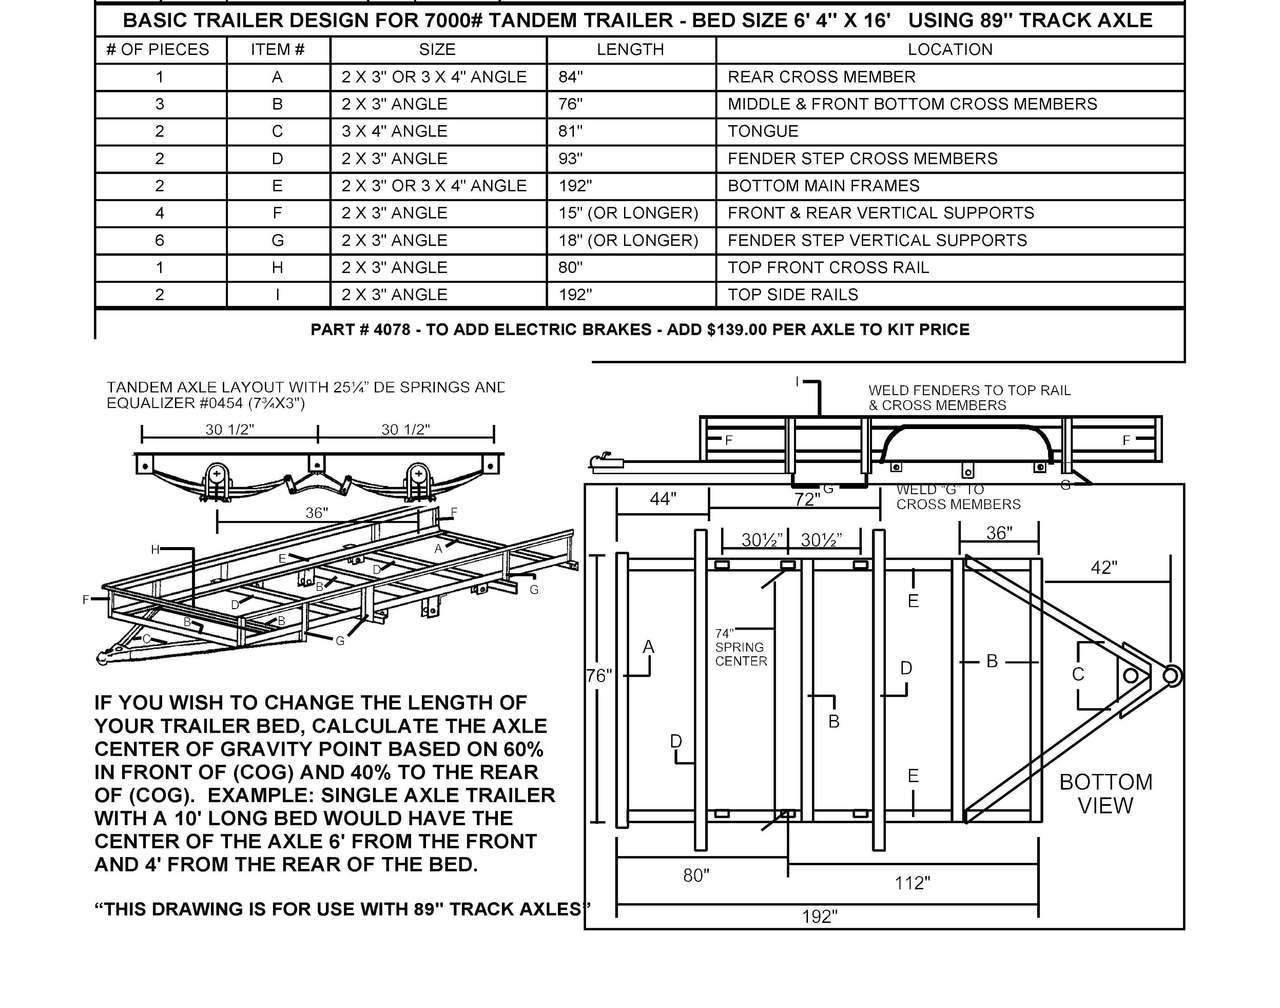 hight resolution of build your own utility trailer with champion trailers complete tandem axle utility trailer diagram